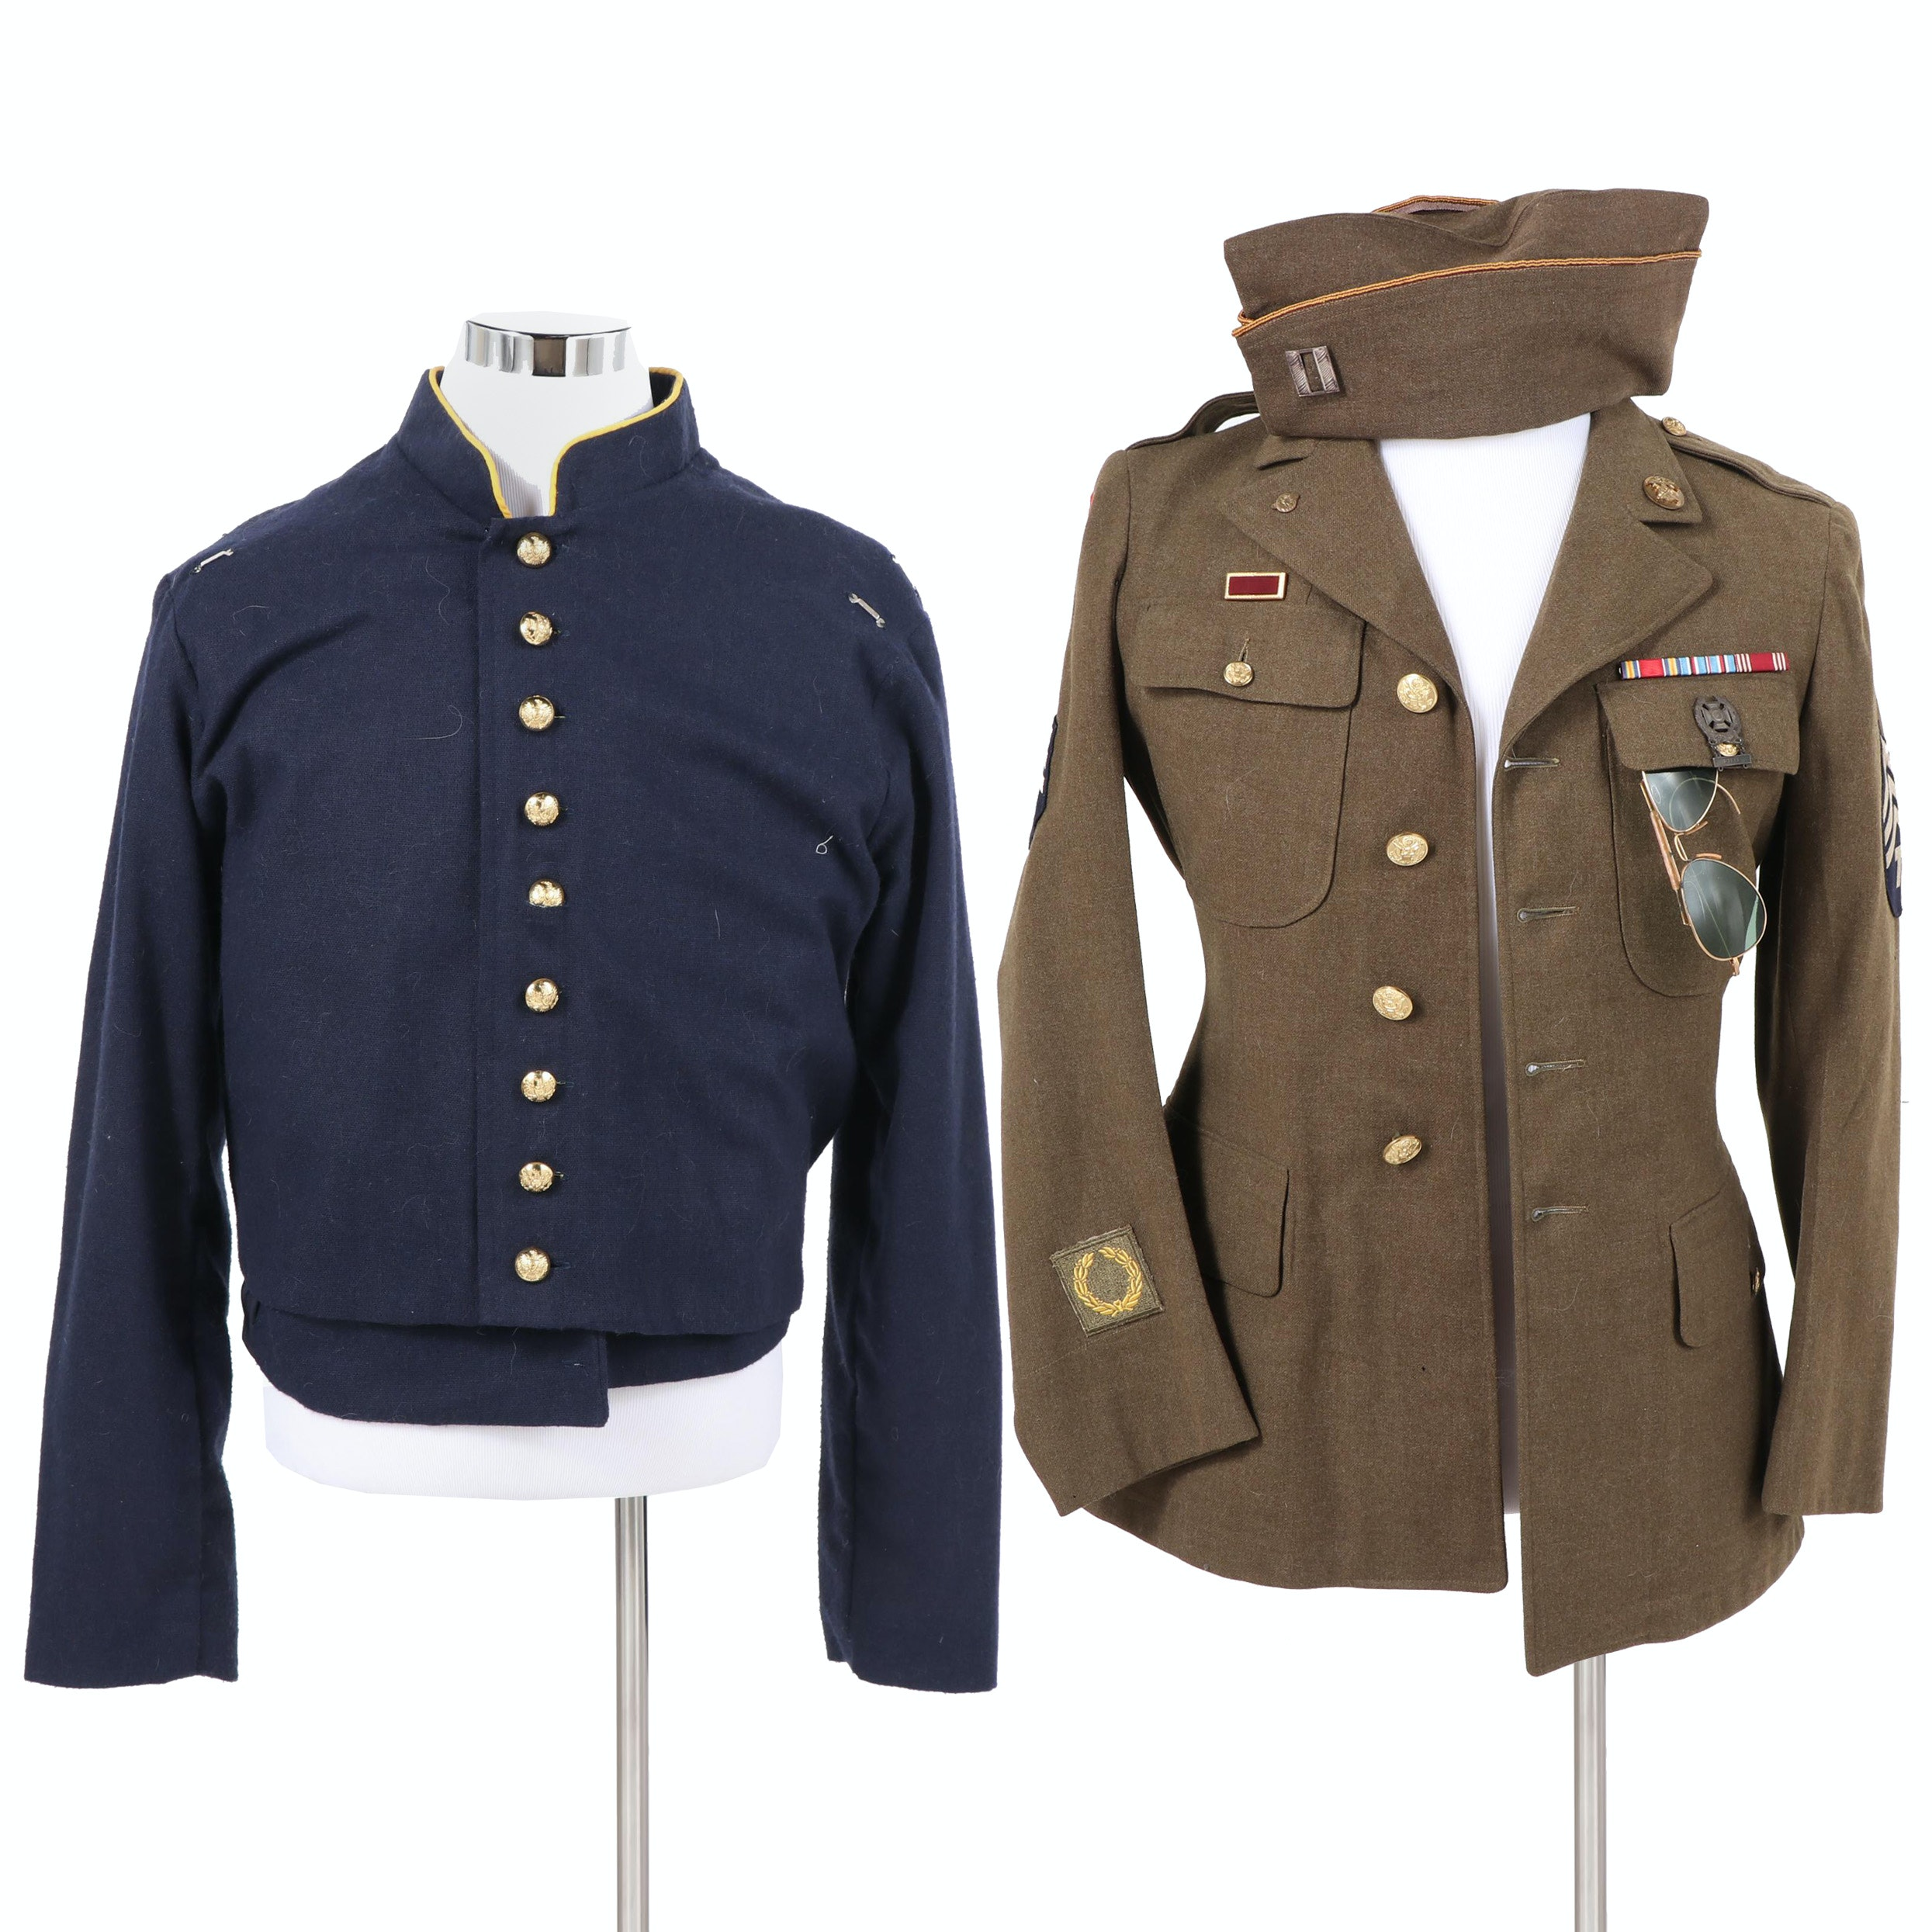 Reproduction Civil War Era Cavalry Shell Jacket and WWII US Army Officer Jacket